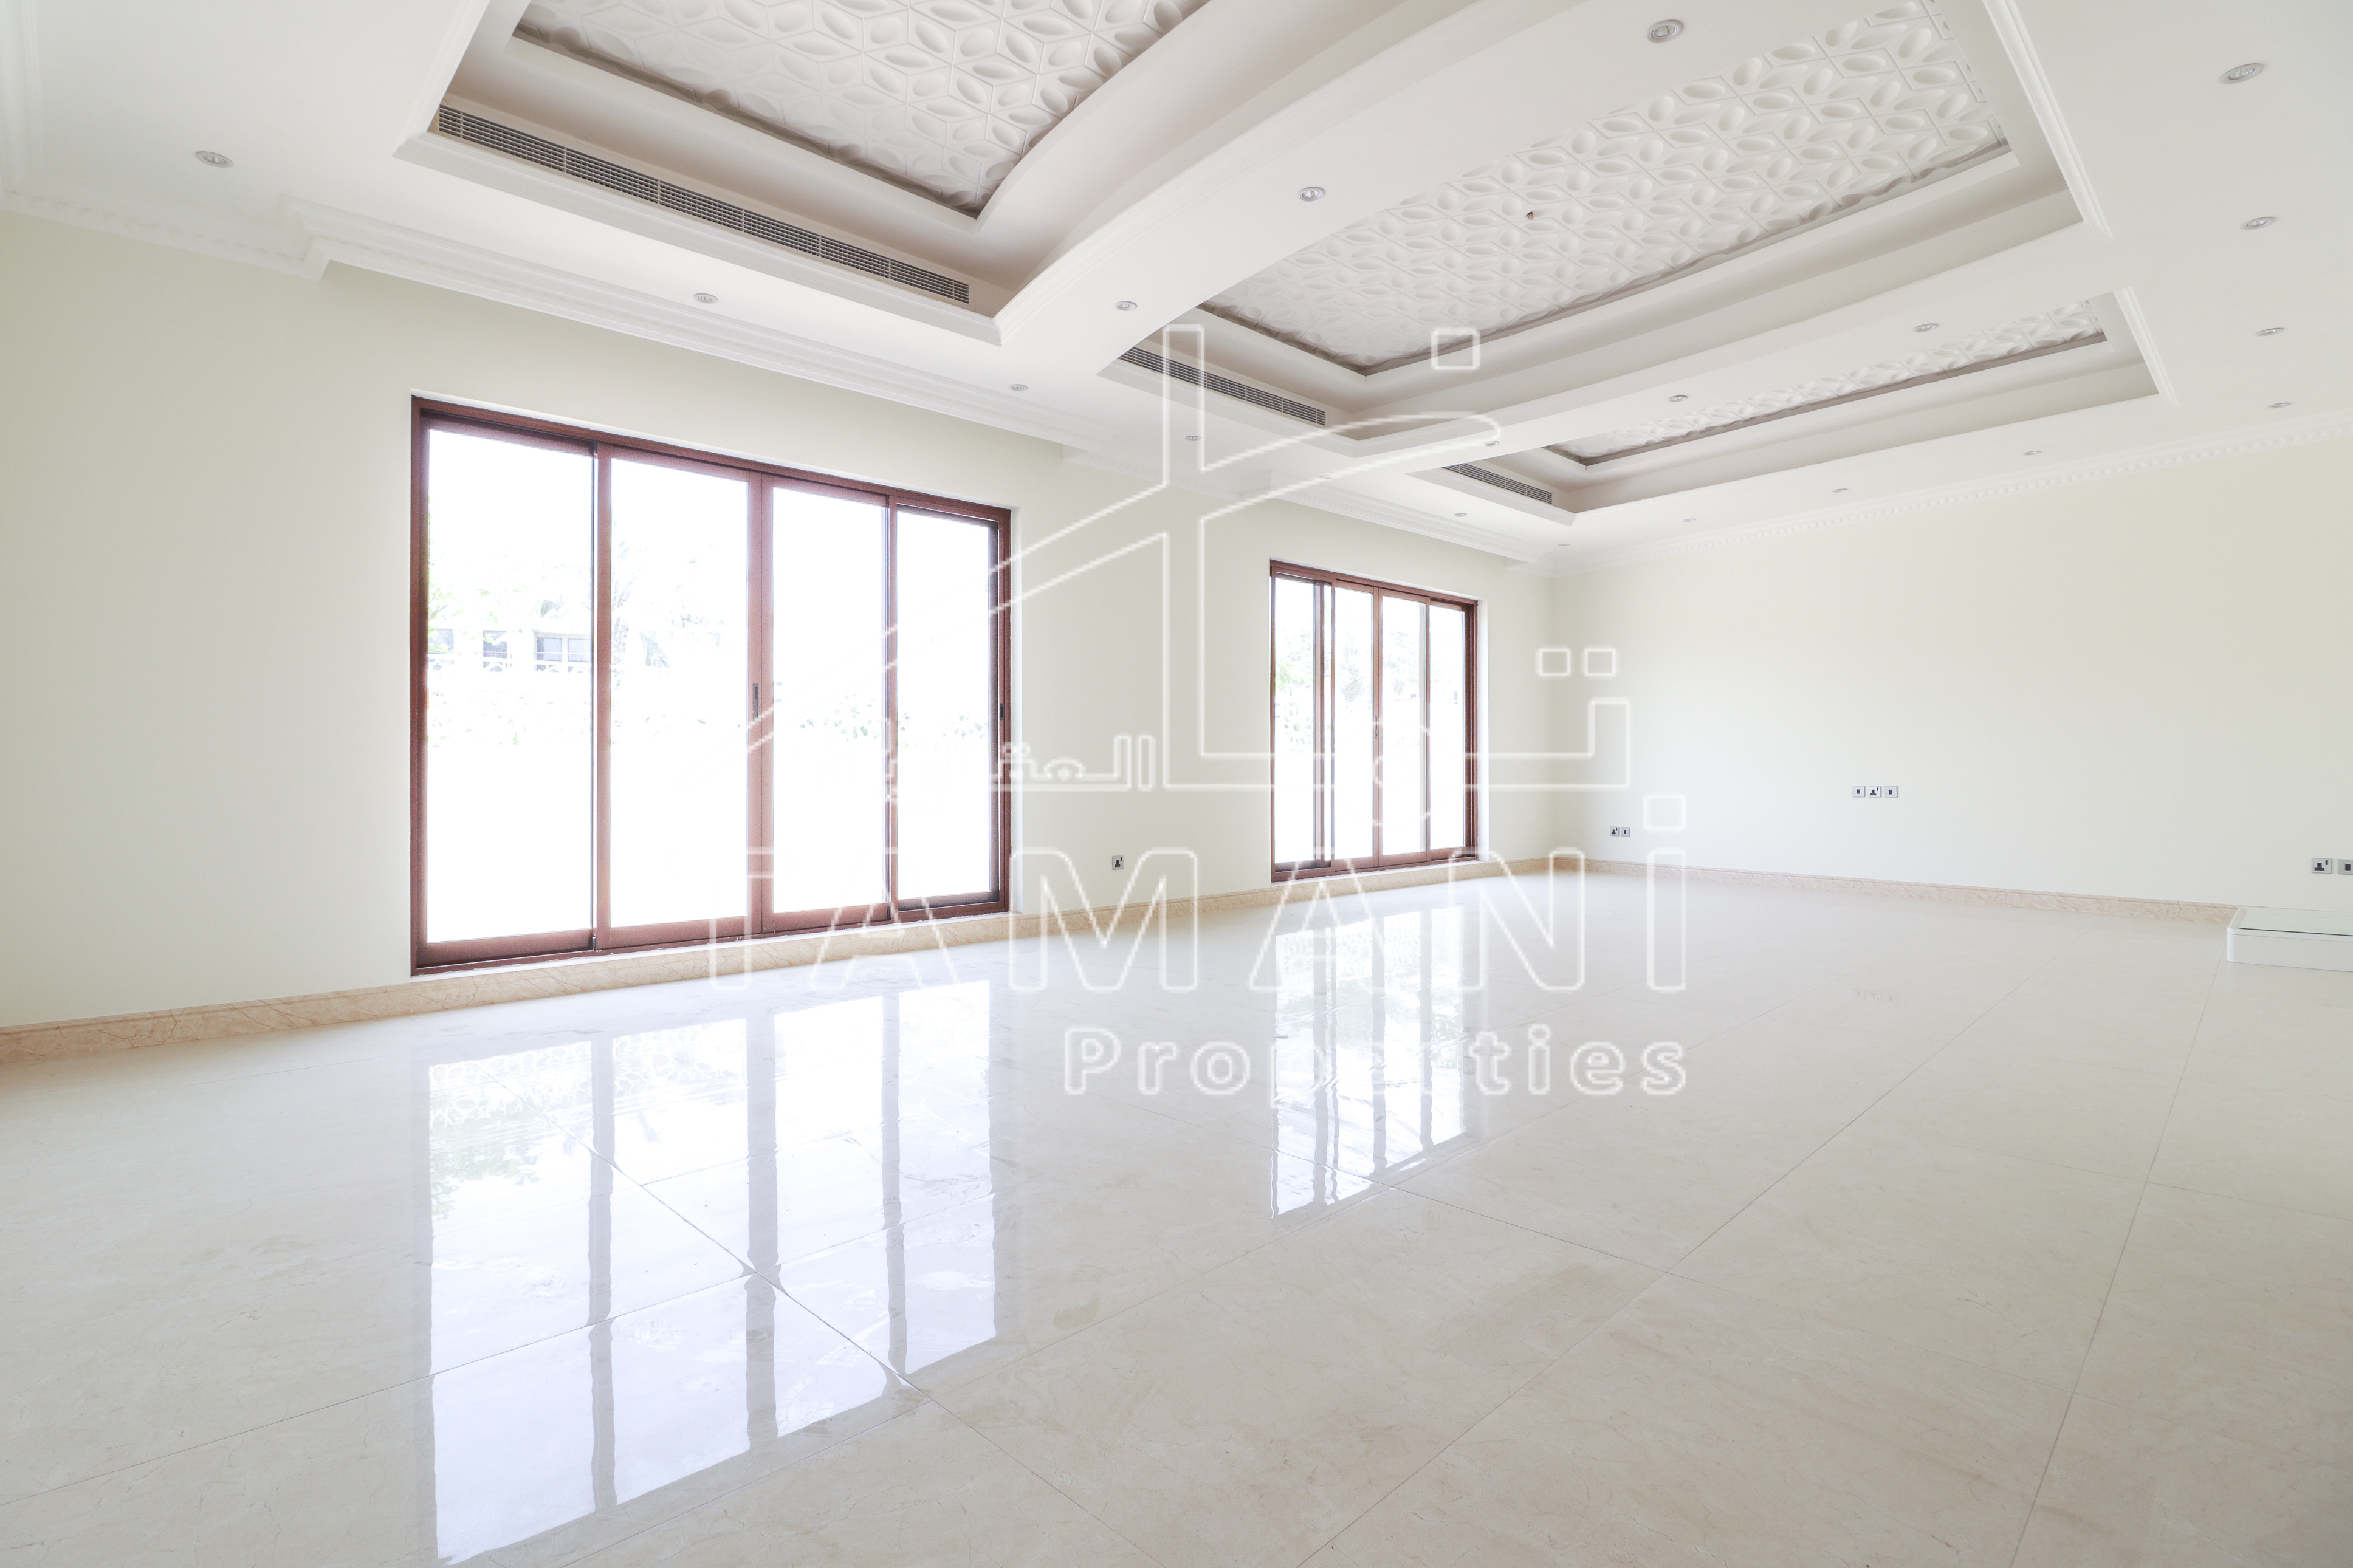 High Quality |Brand New |Marble Flooring - The Aldea